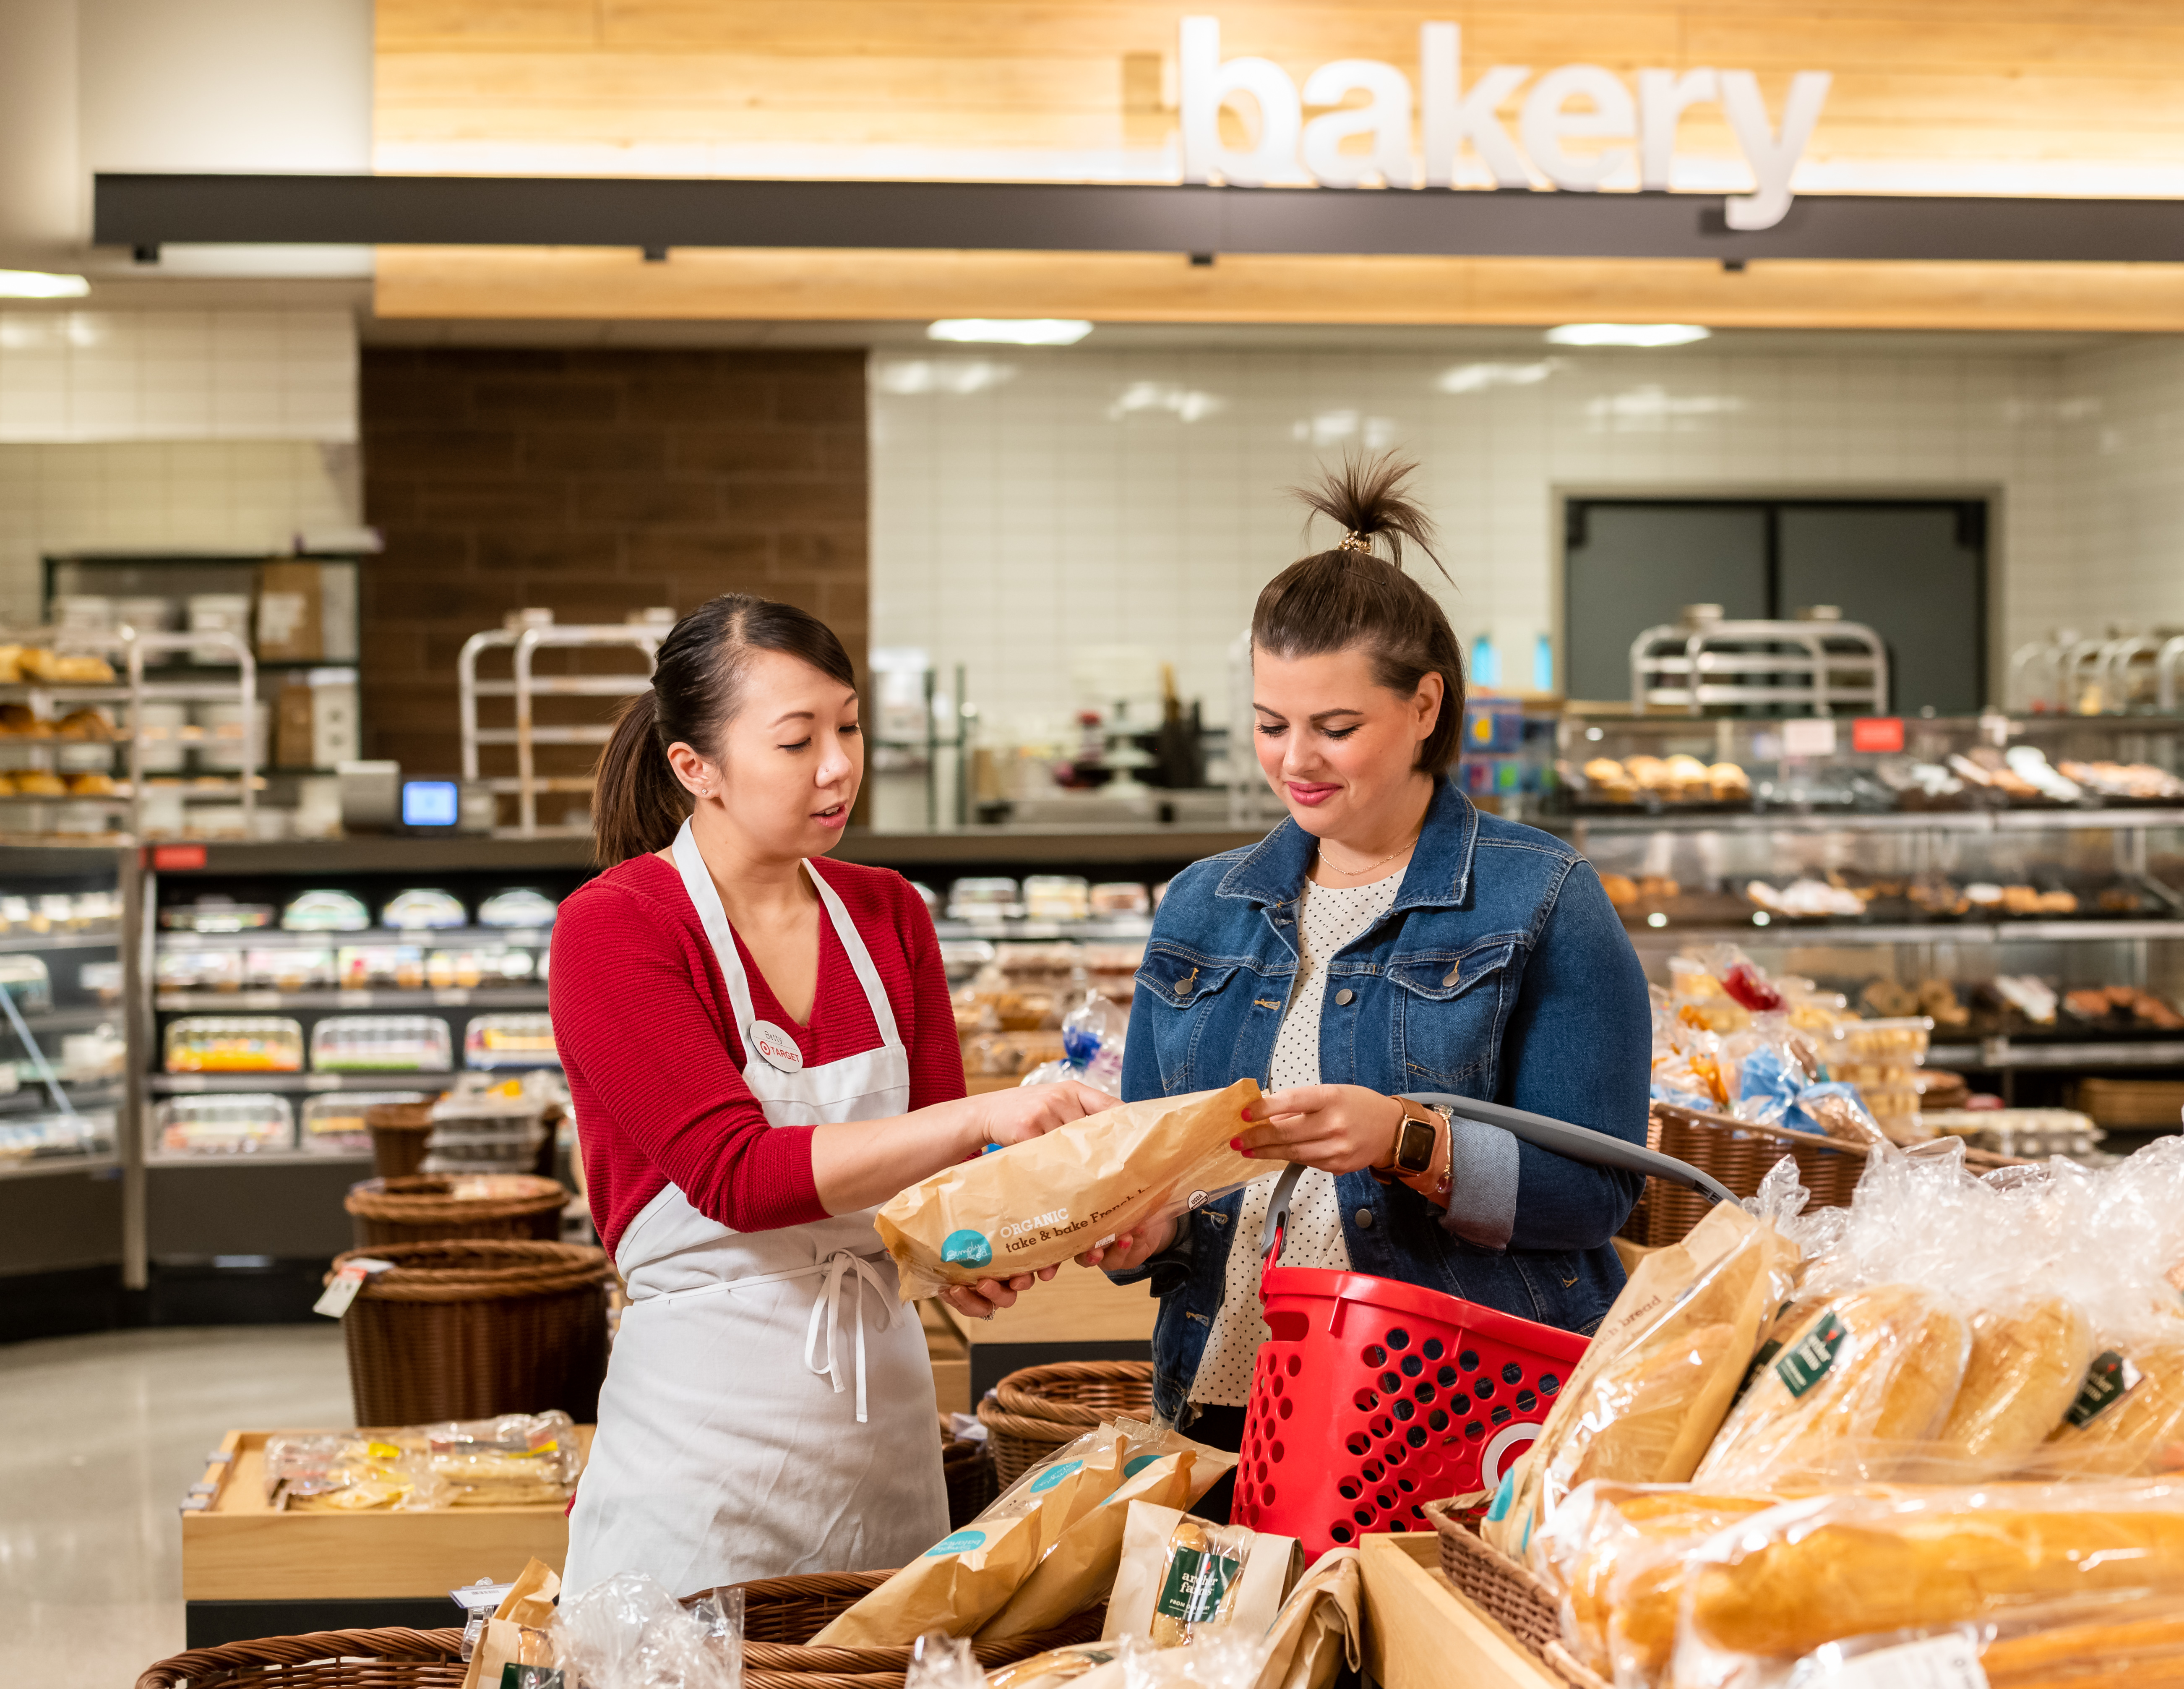 Target team member assisting a guest in the bakery.